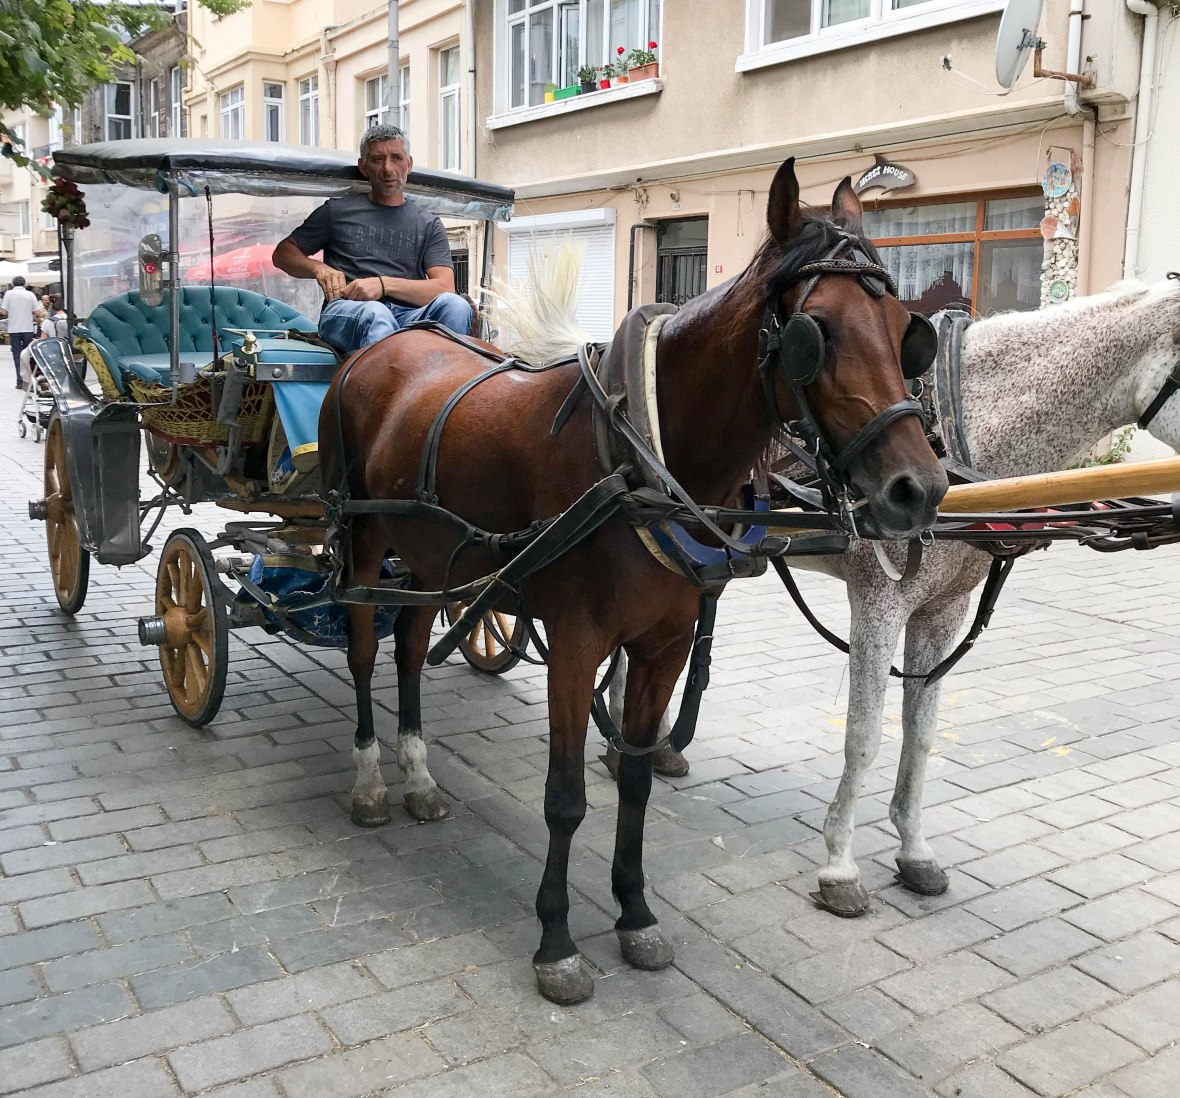 horse and carriage, heybeliada island, adalar, princes islands, istanbul